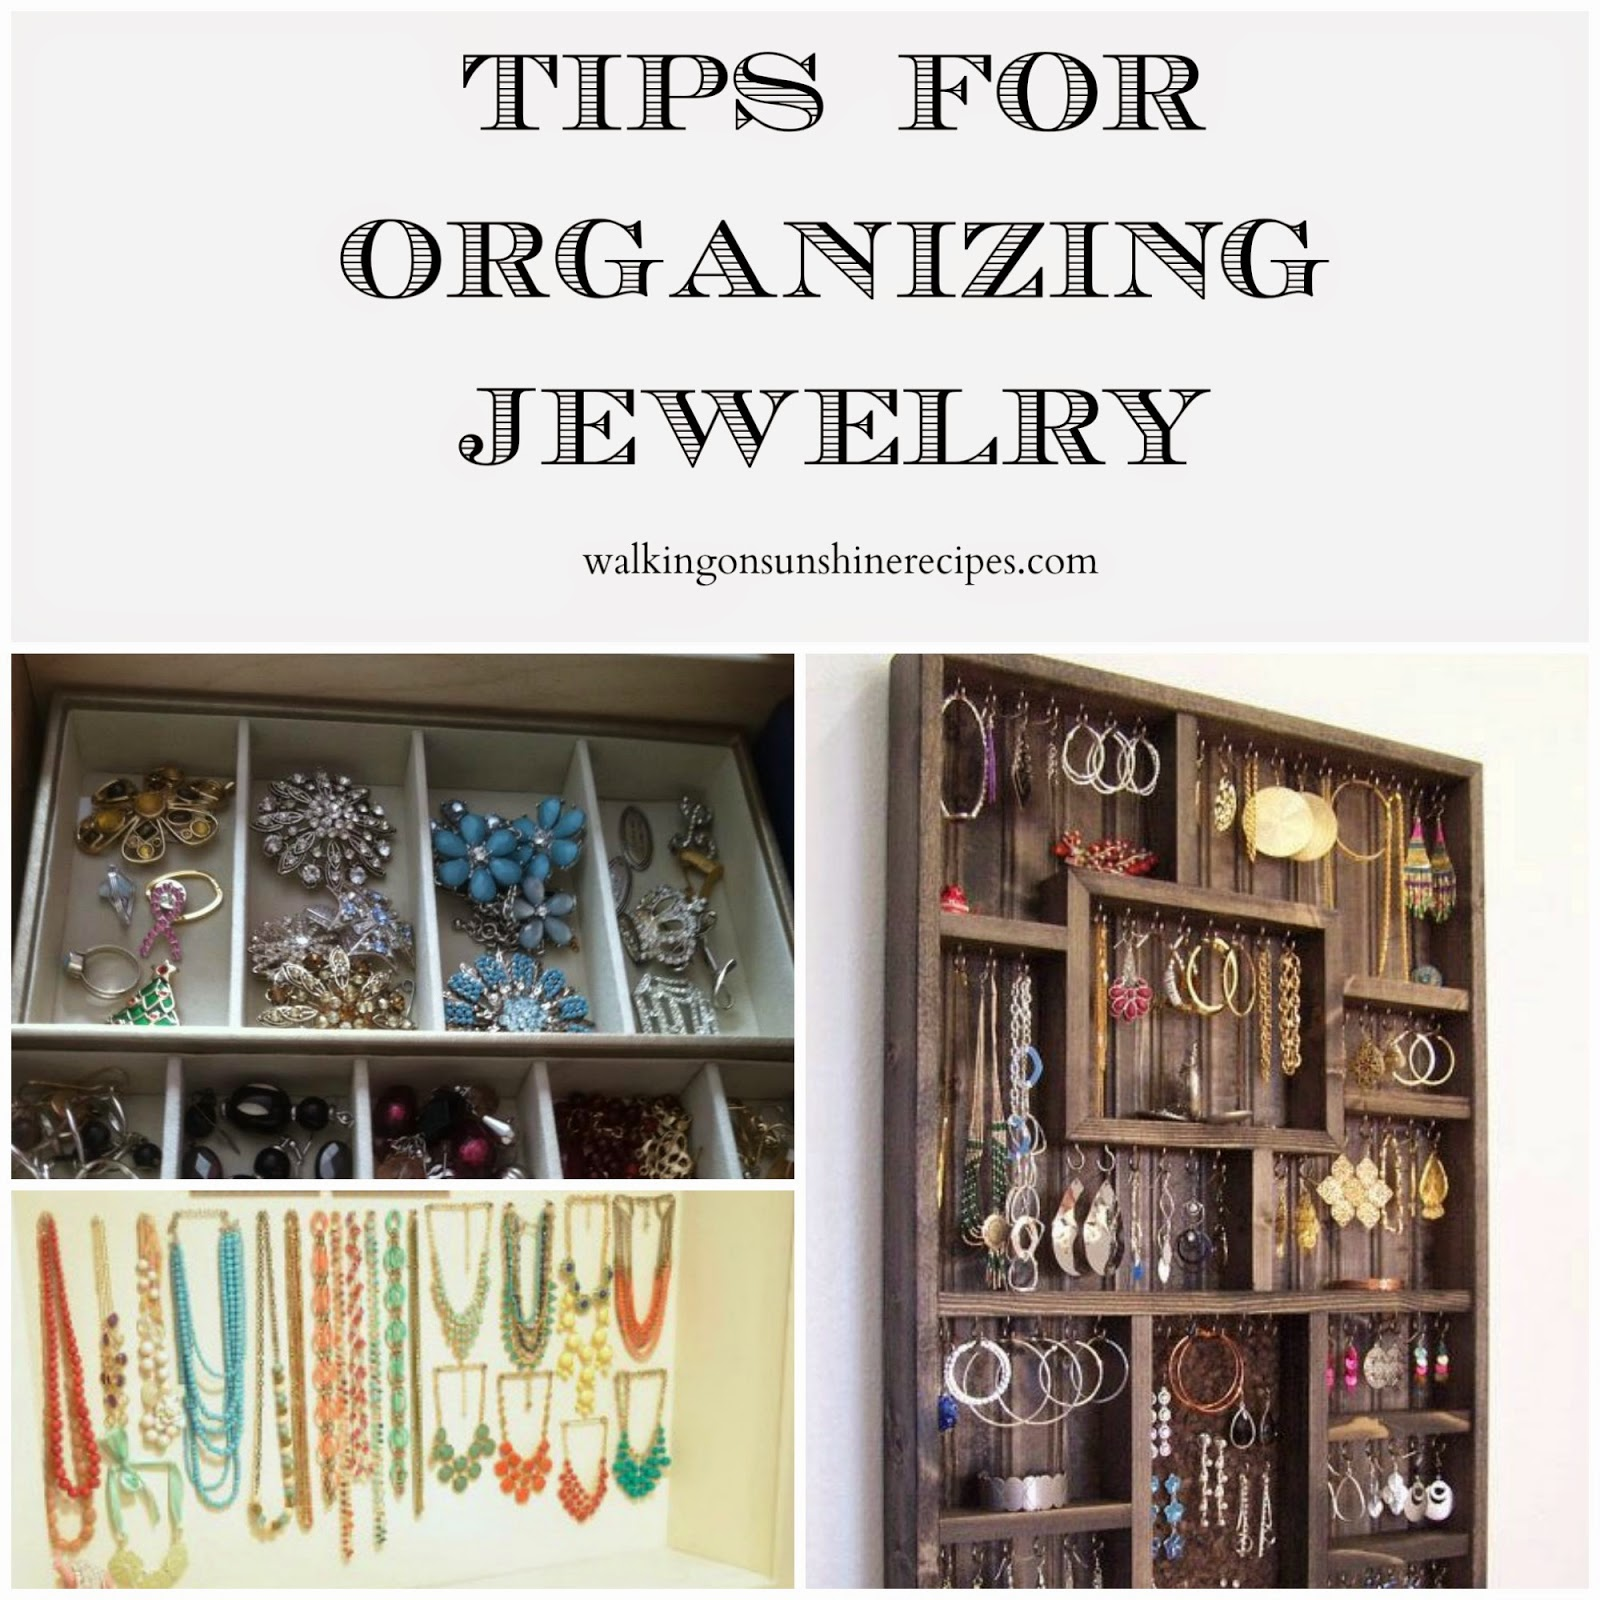 This week's Thursday's Tip is all about organizing jewelry from Walking on Sunshine Recipes